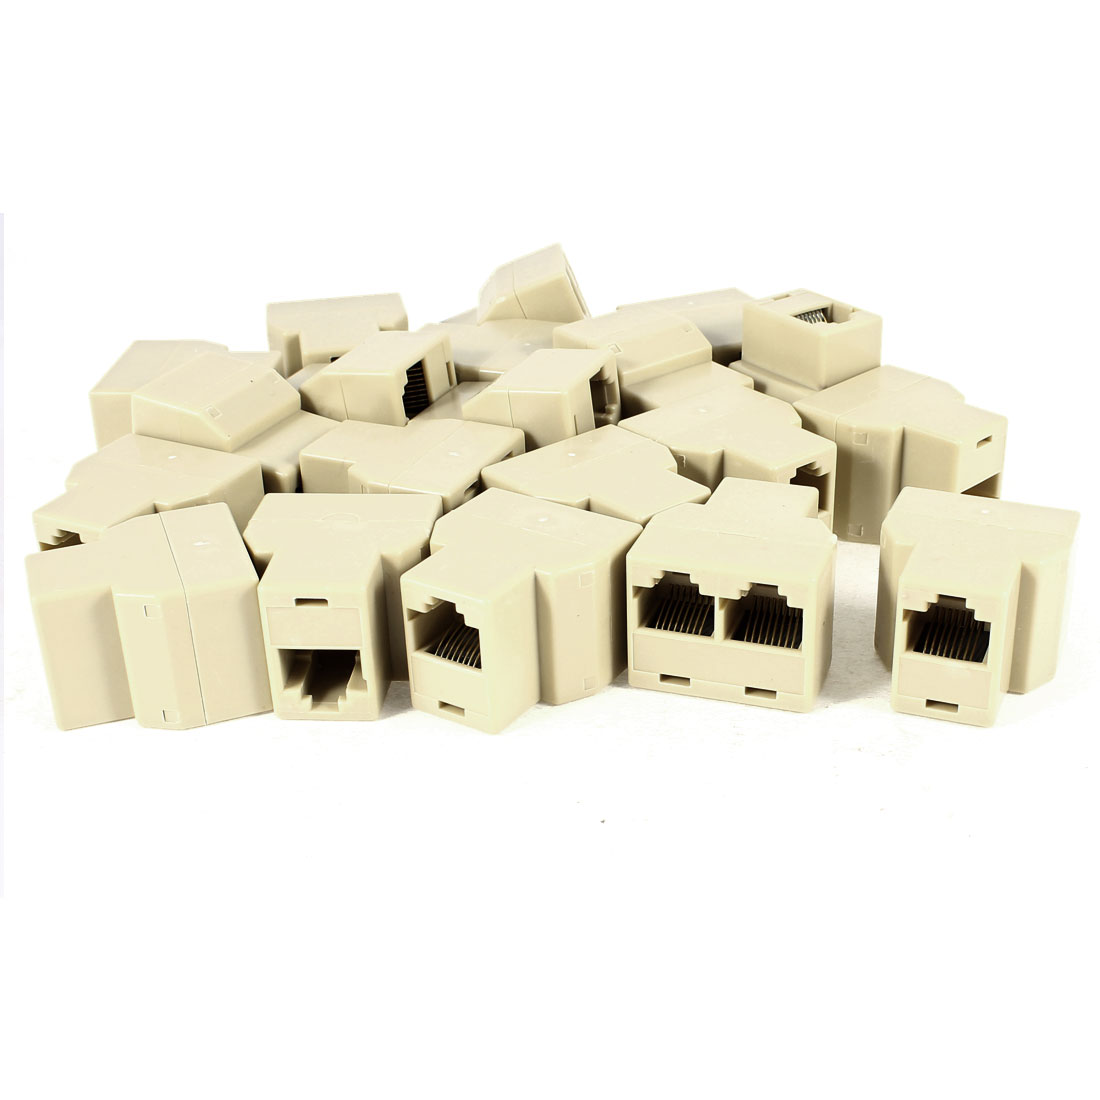 20 Pcs 2 Way RJ45 8P8C Female Network ADSL Splitter Adapter Connector Beige